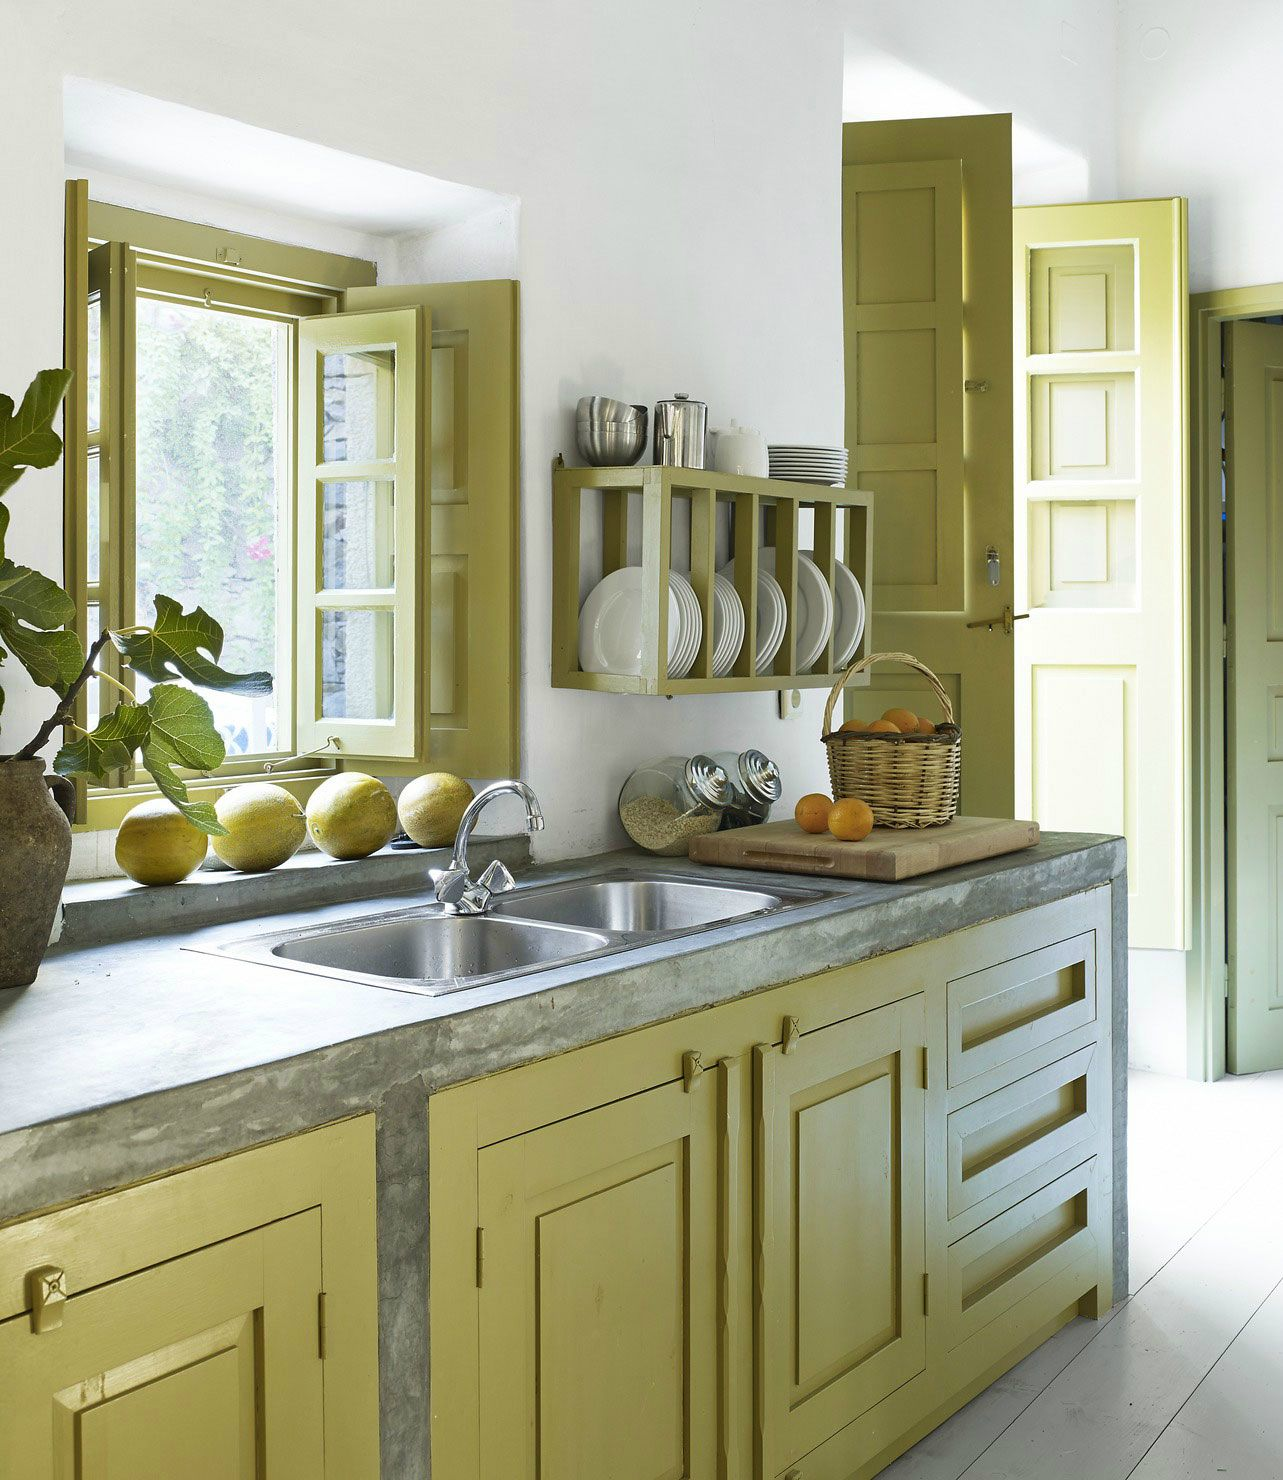 Green Kitchen Colour Ideas Home Trends: Elle Decor Predicts The Color Trends For 2017